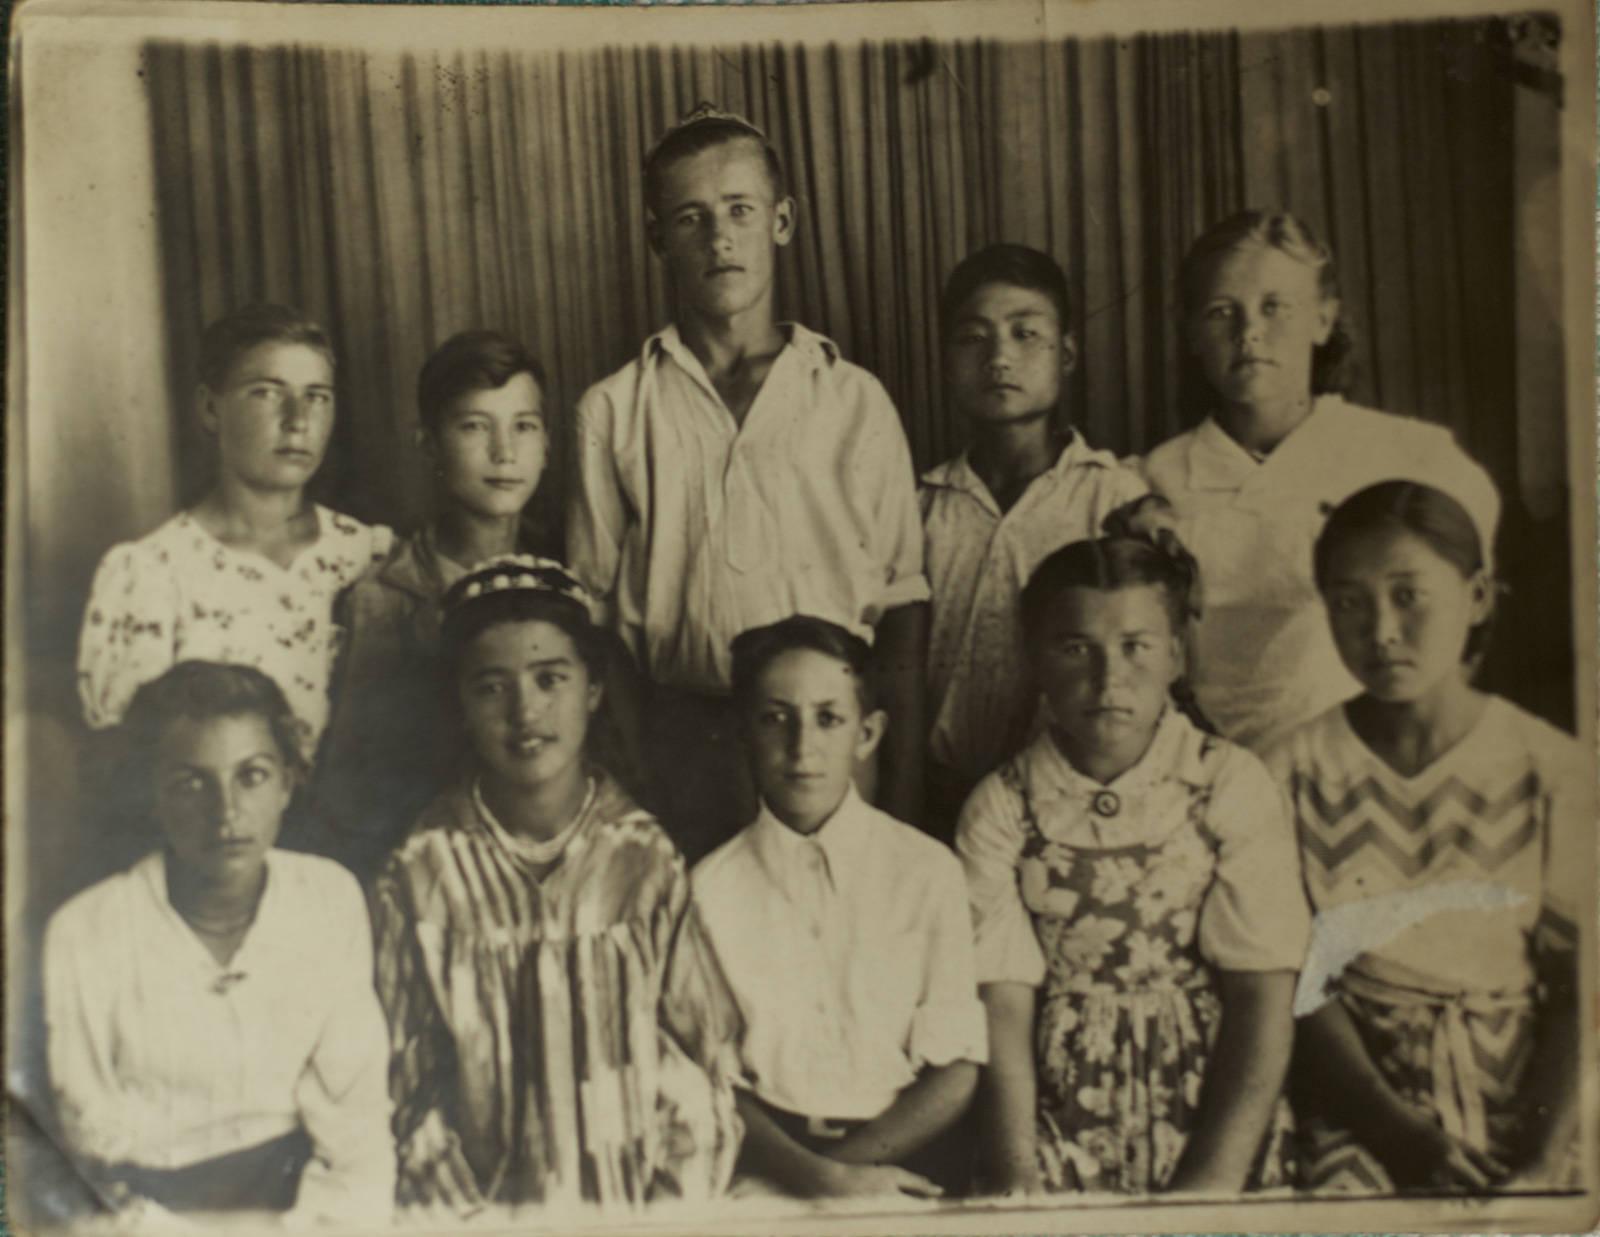 Korean, Russian, Tartar, Ukrainian and Uzbek kids all together in a class photo (Tashkent in the early 1940s)